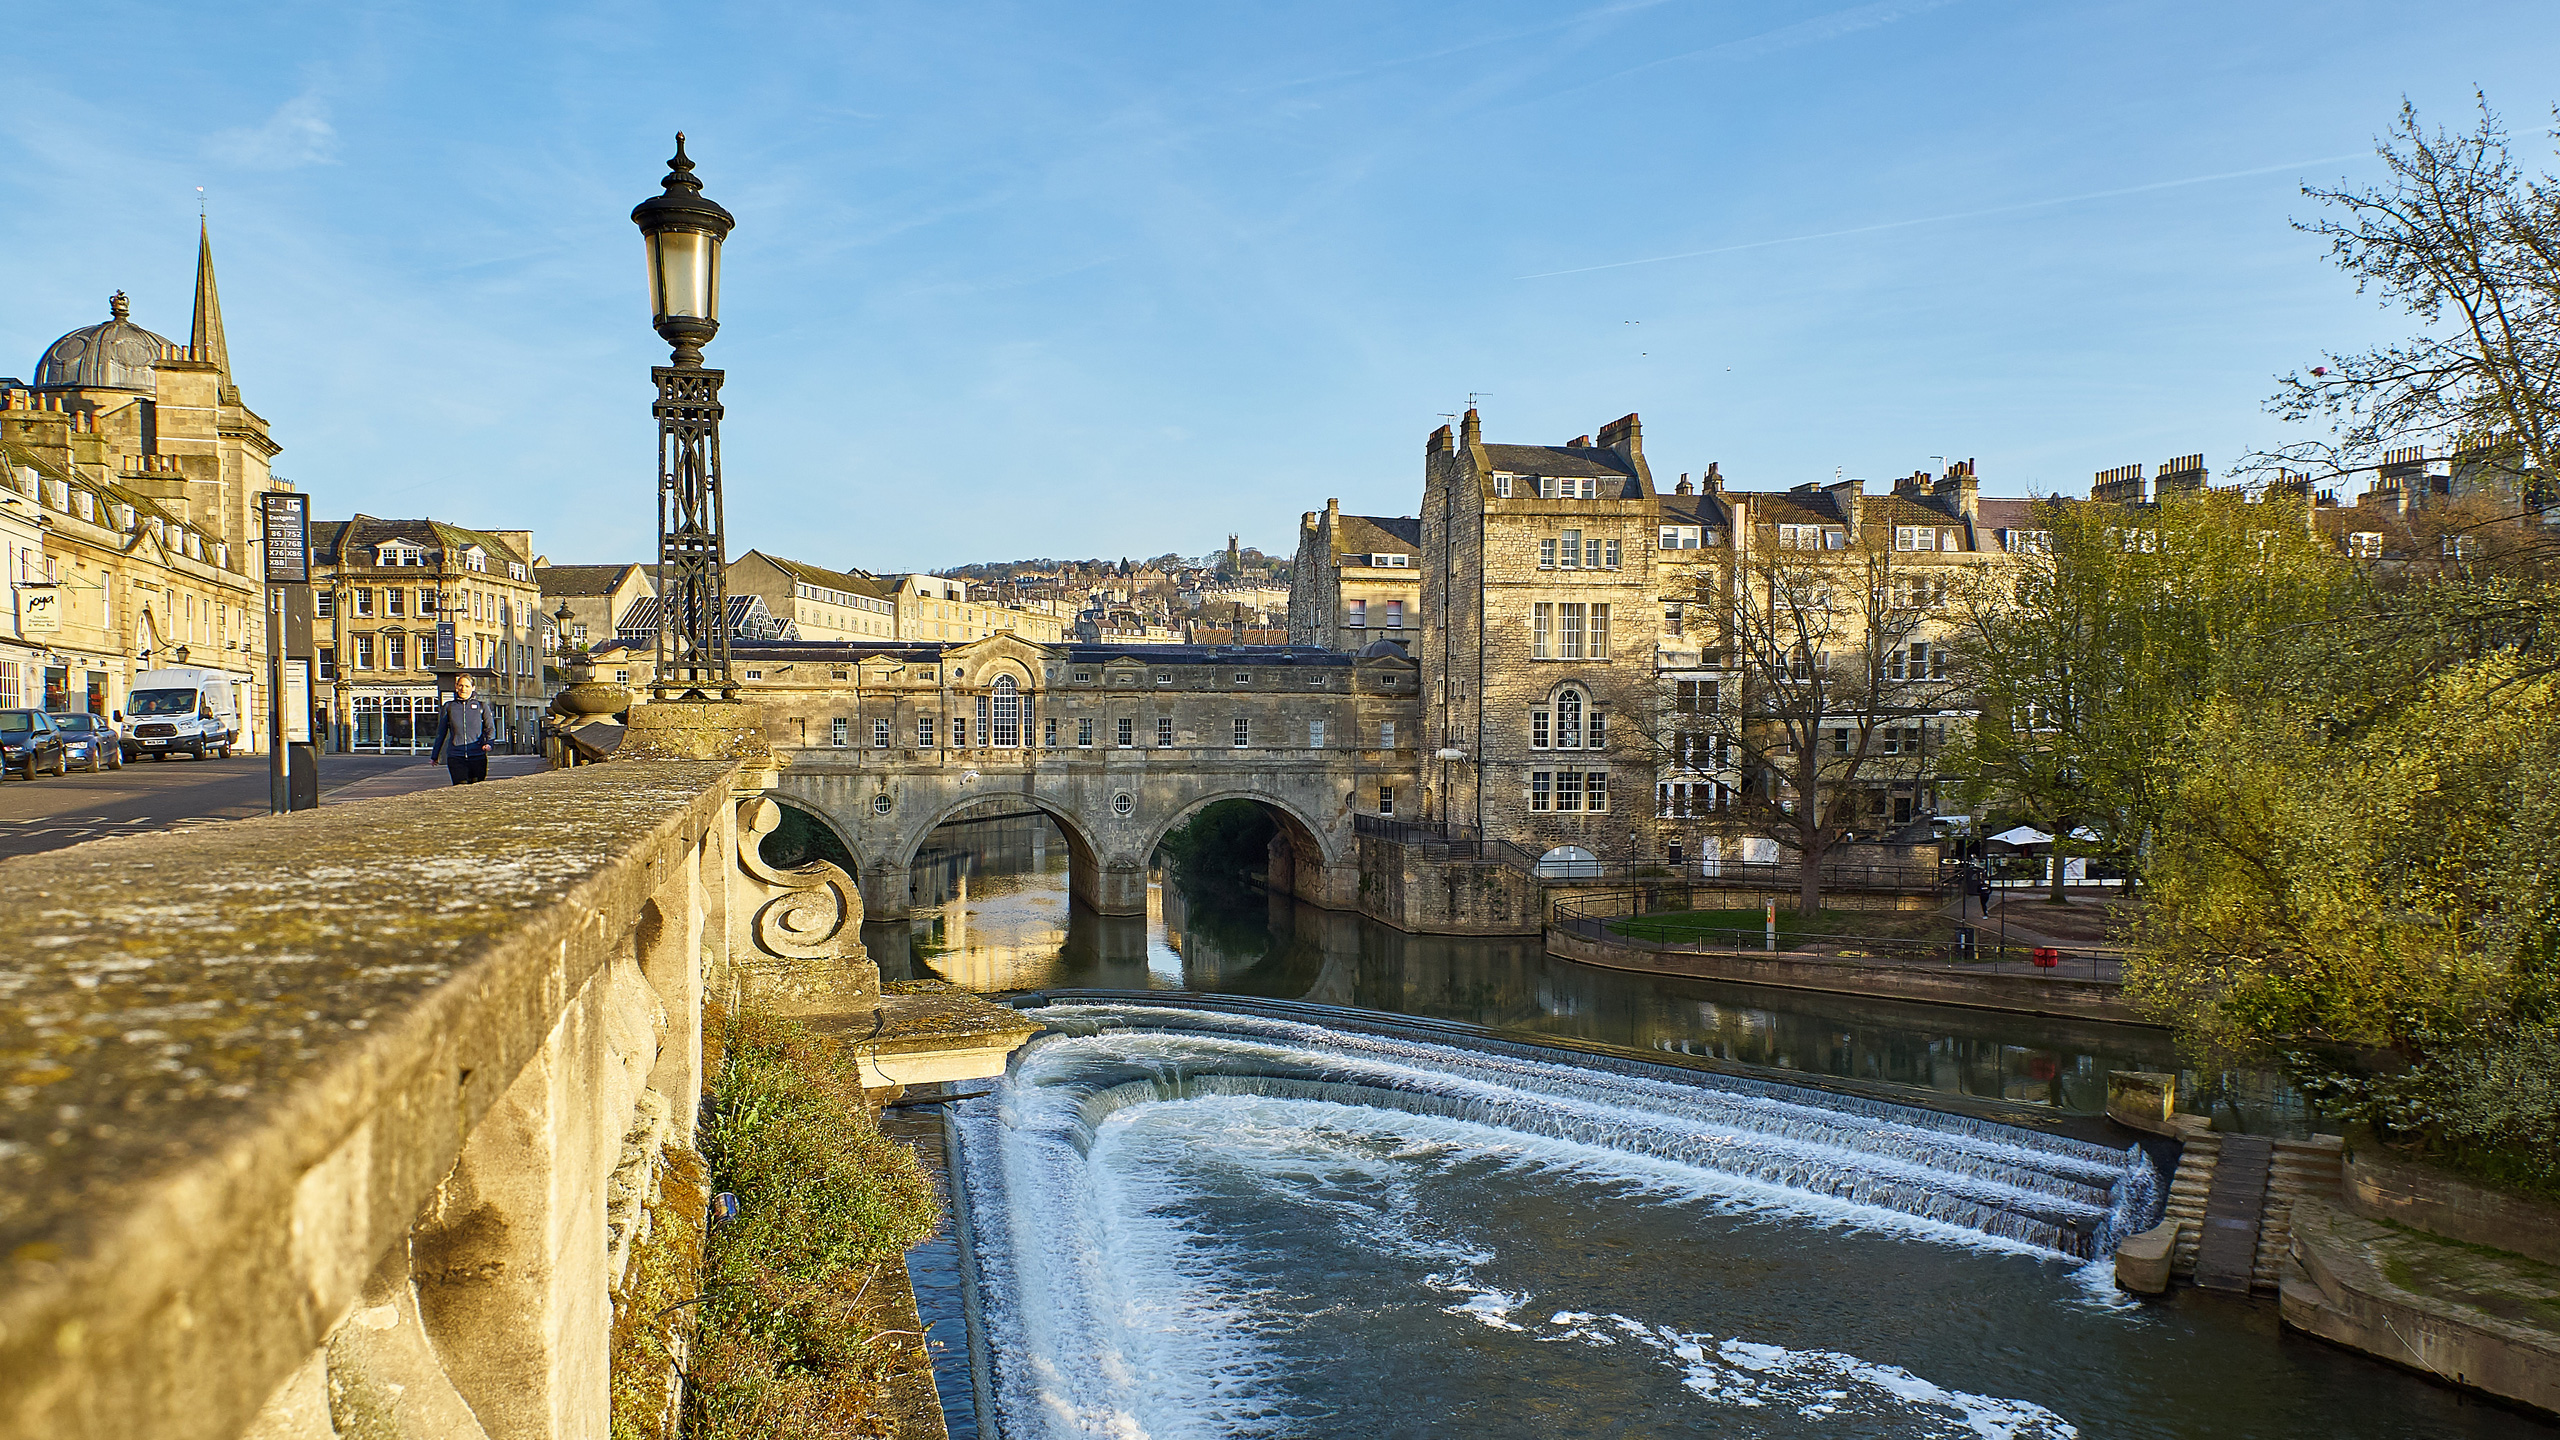 A picture of Pulteney Bridge in Bath